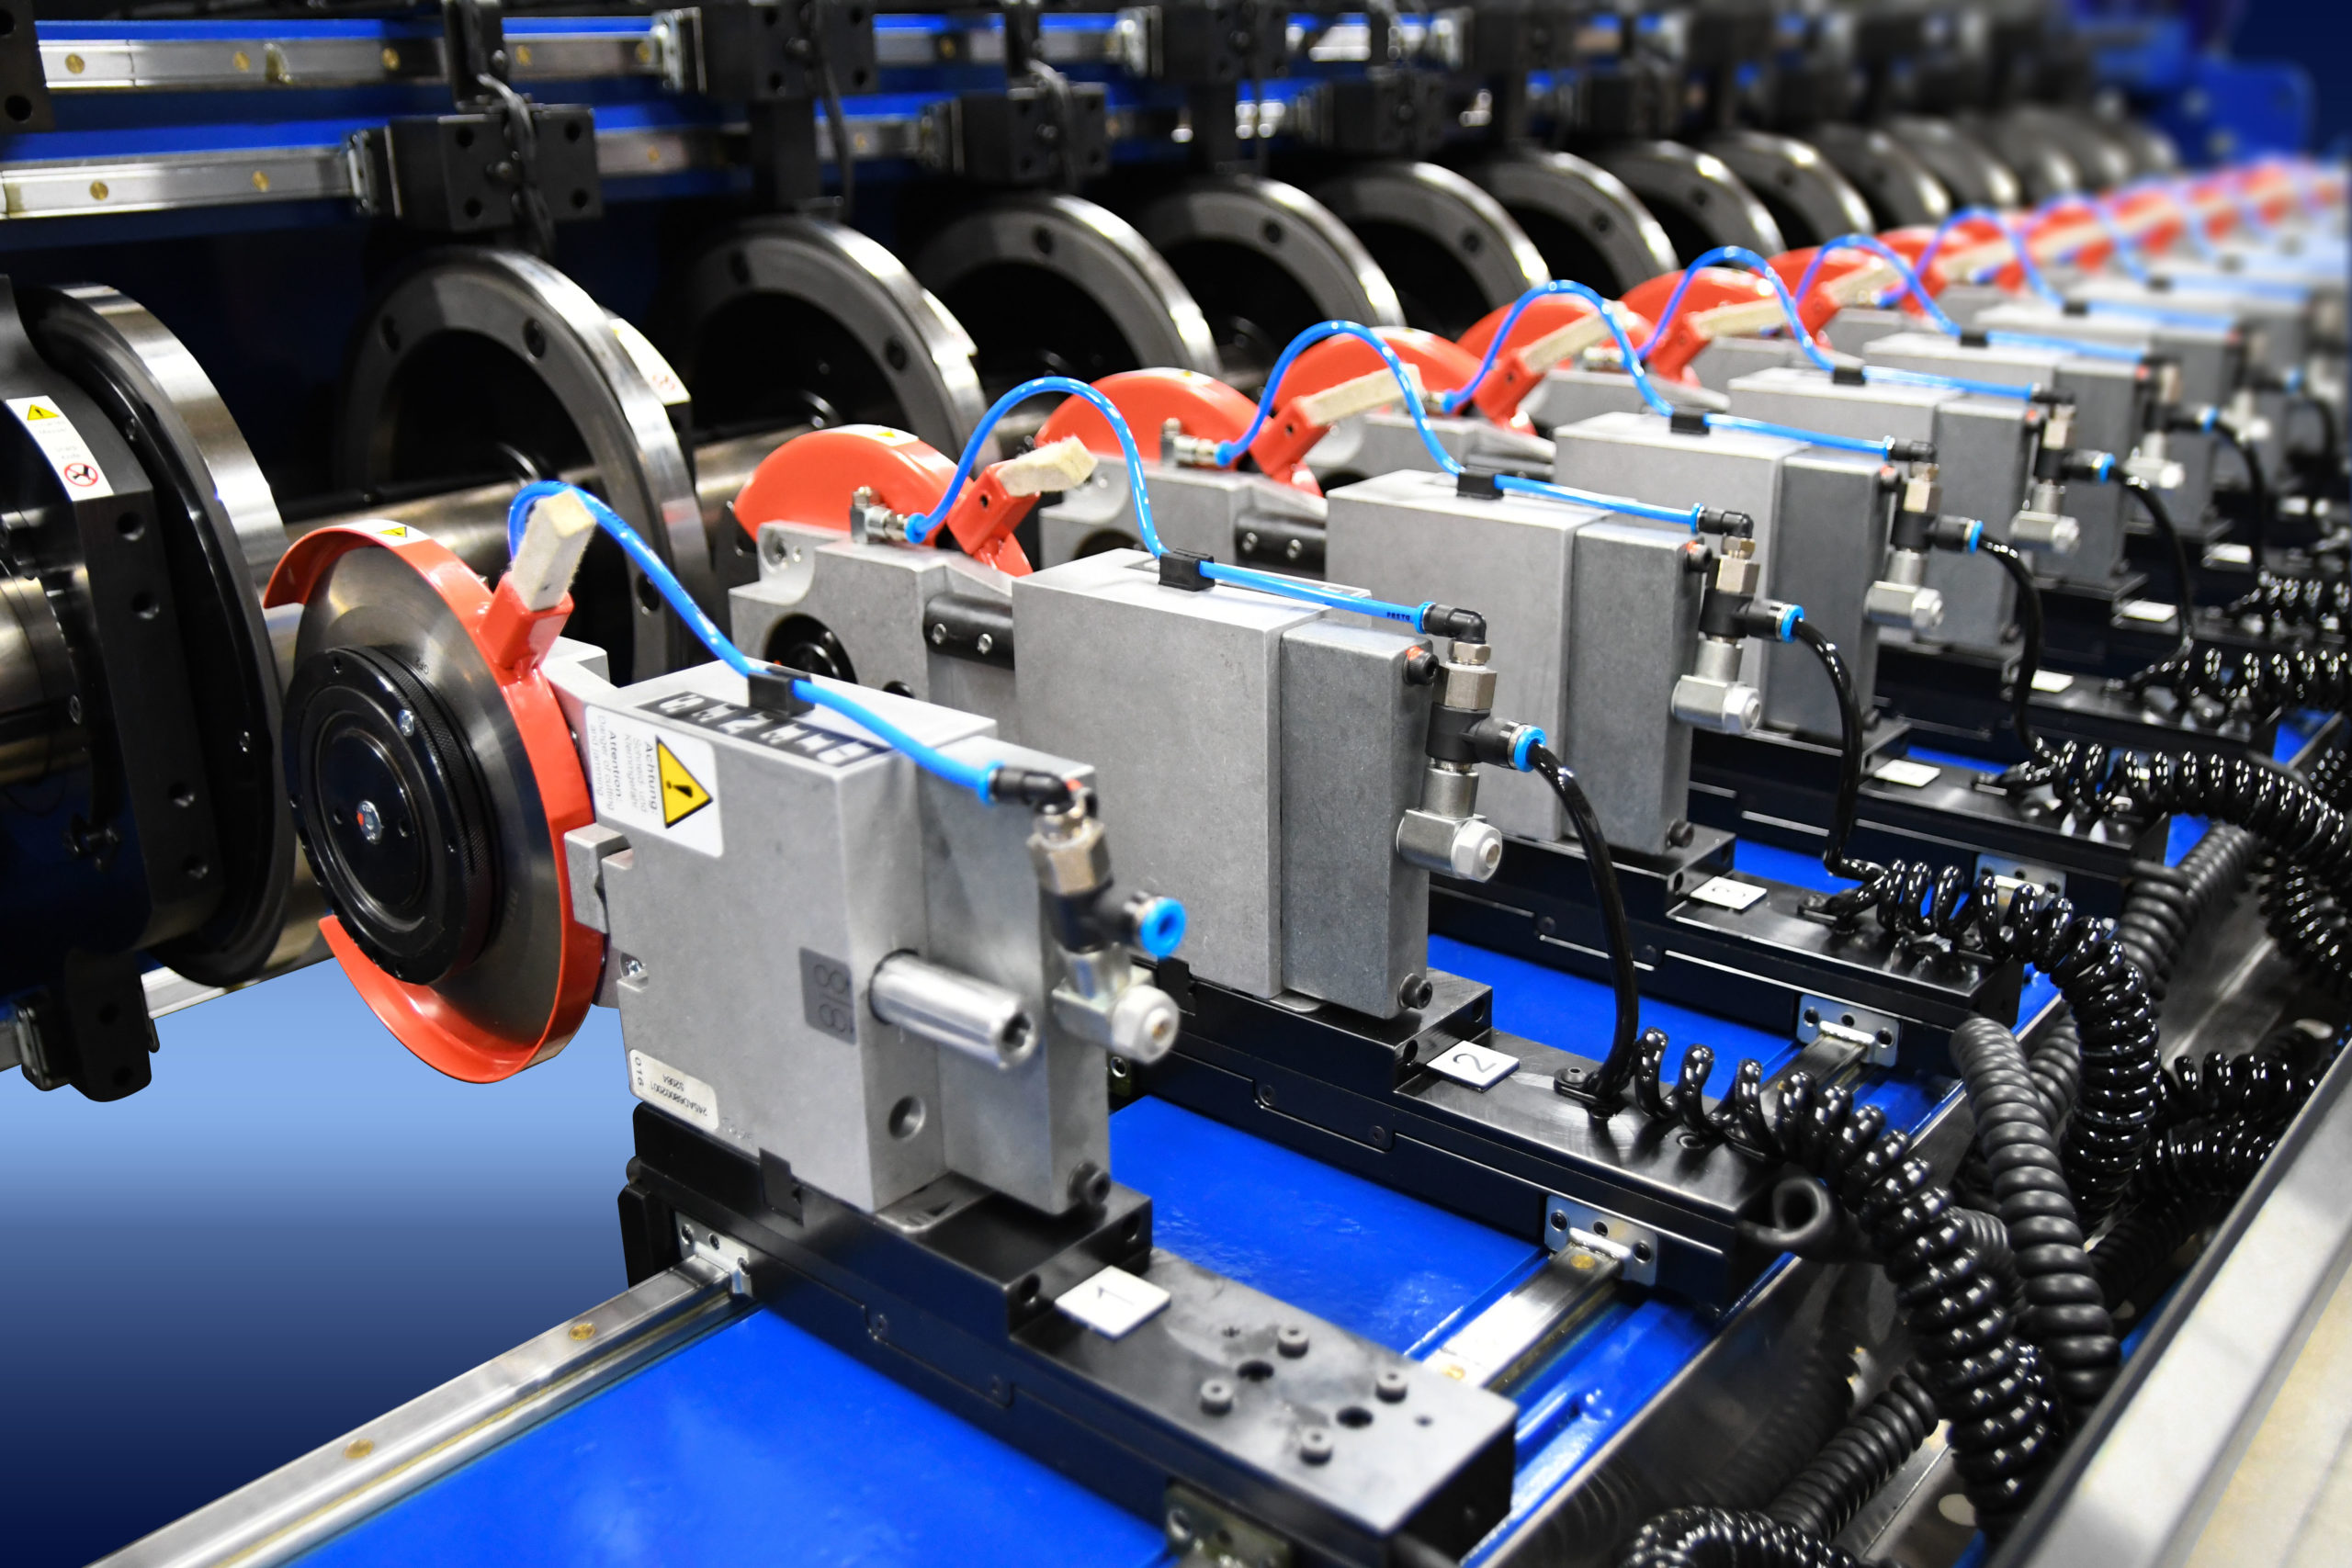 Pneumatic holder system vs. Shafted Cut System